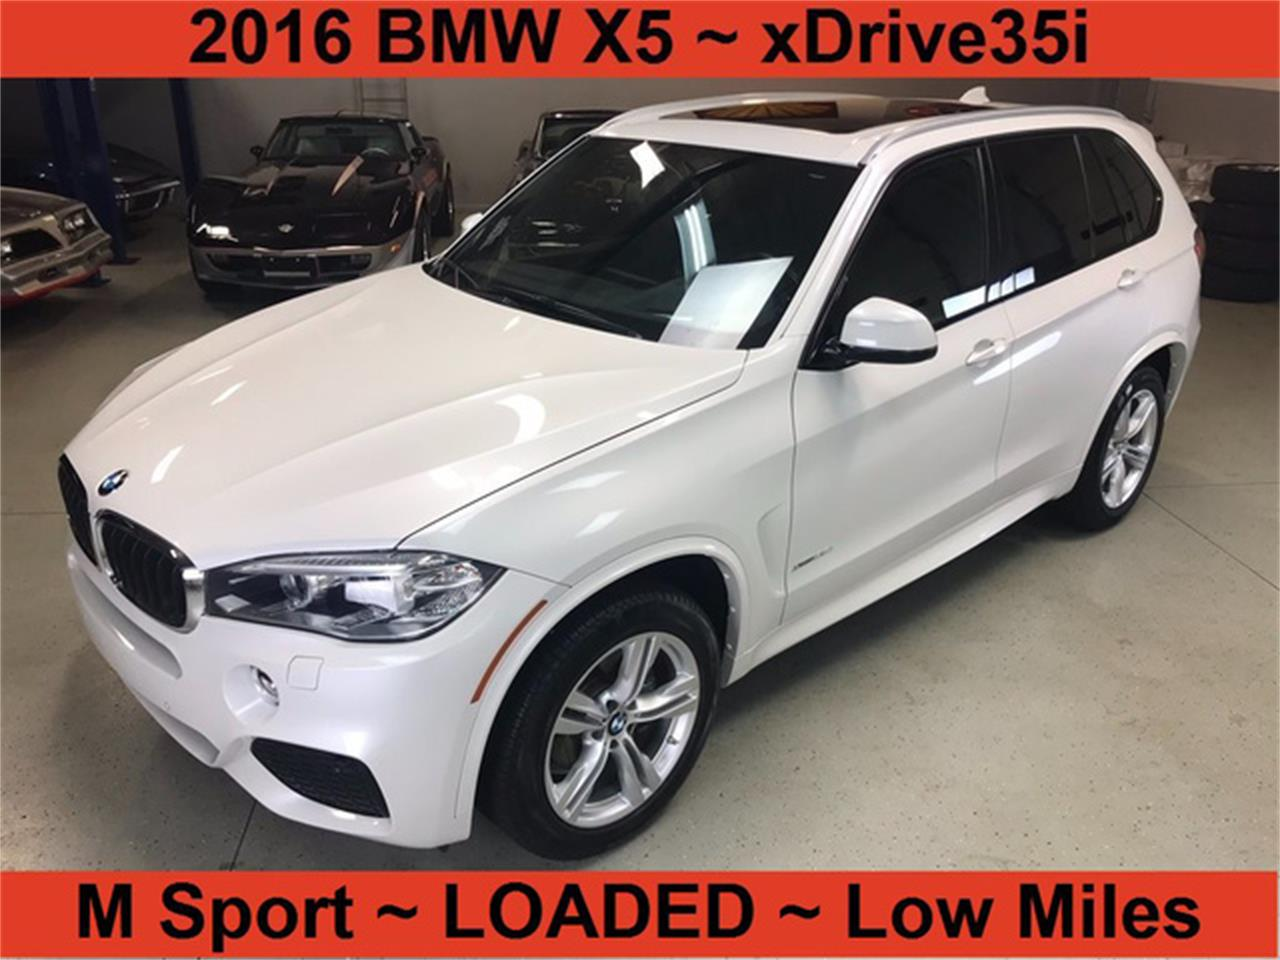 for sale 2016 bmw x5 in shelby township, michigan cars - utica, mi at geebo